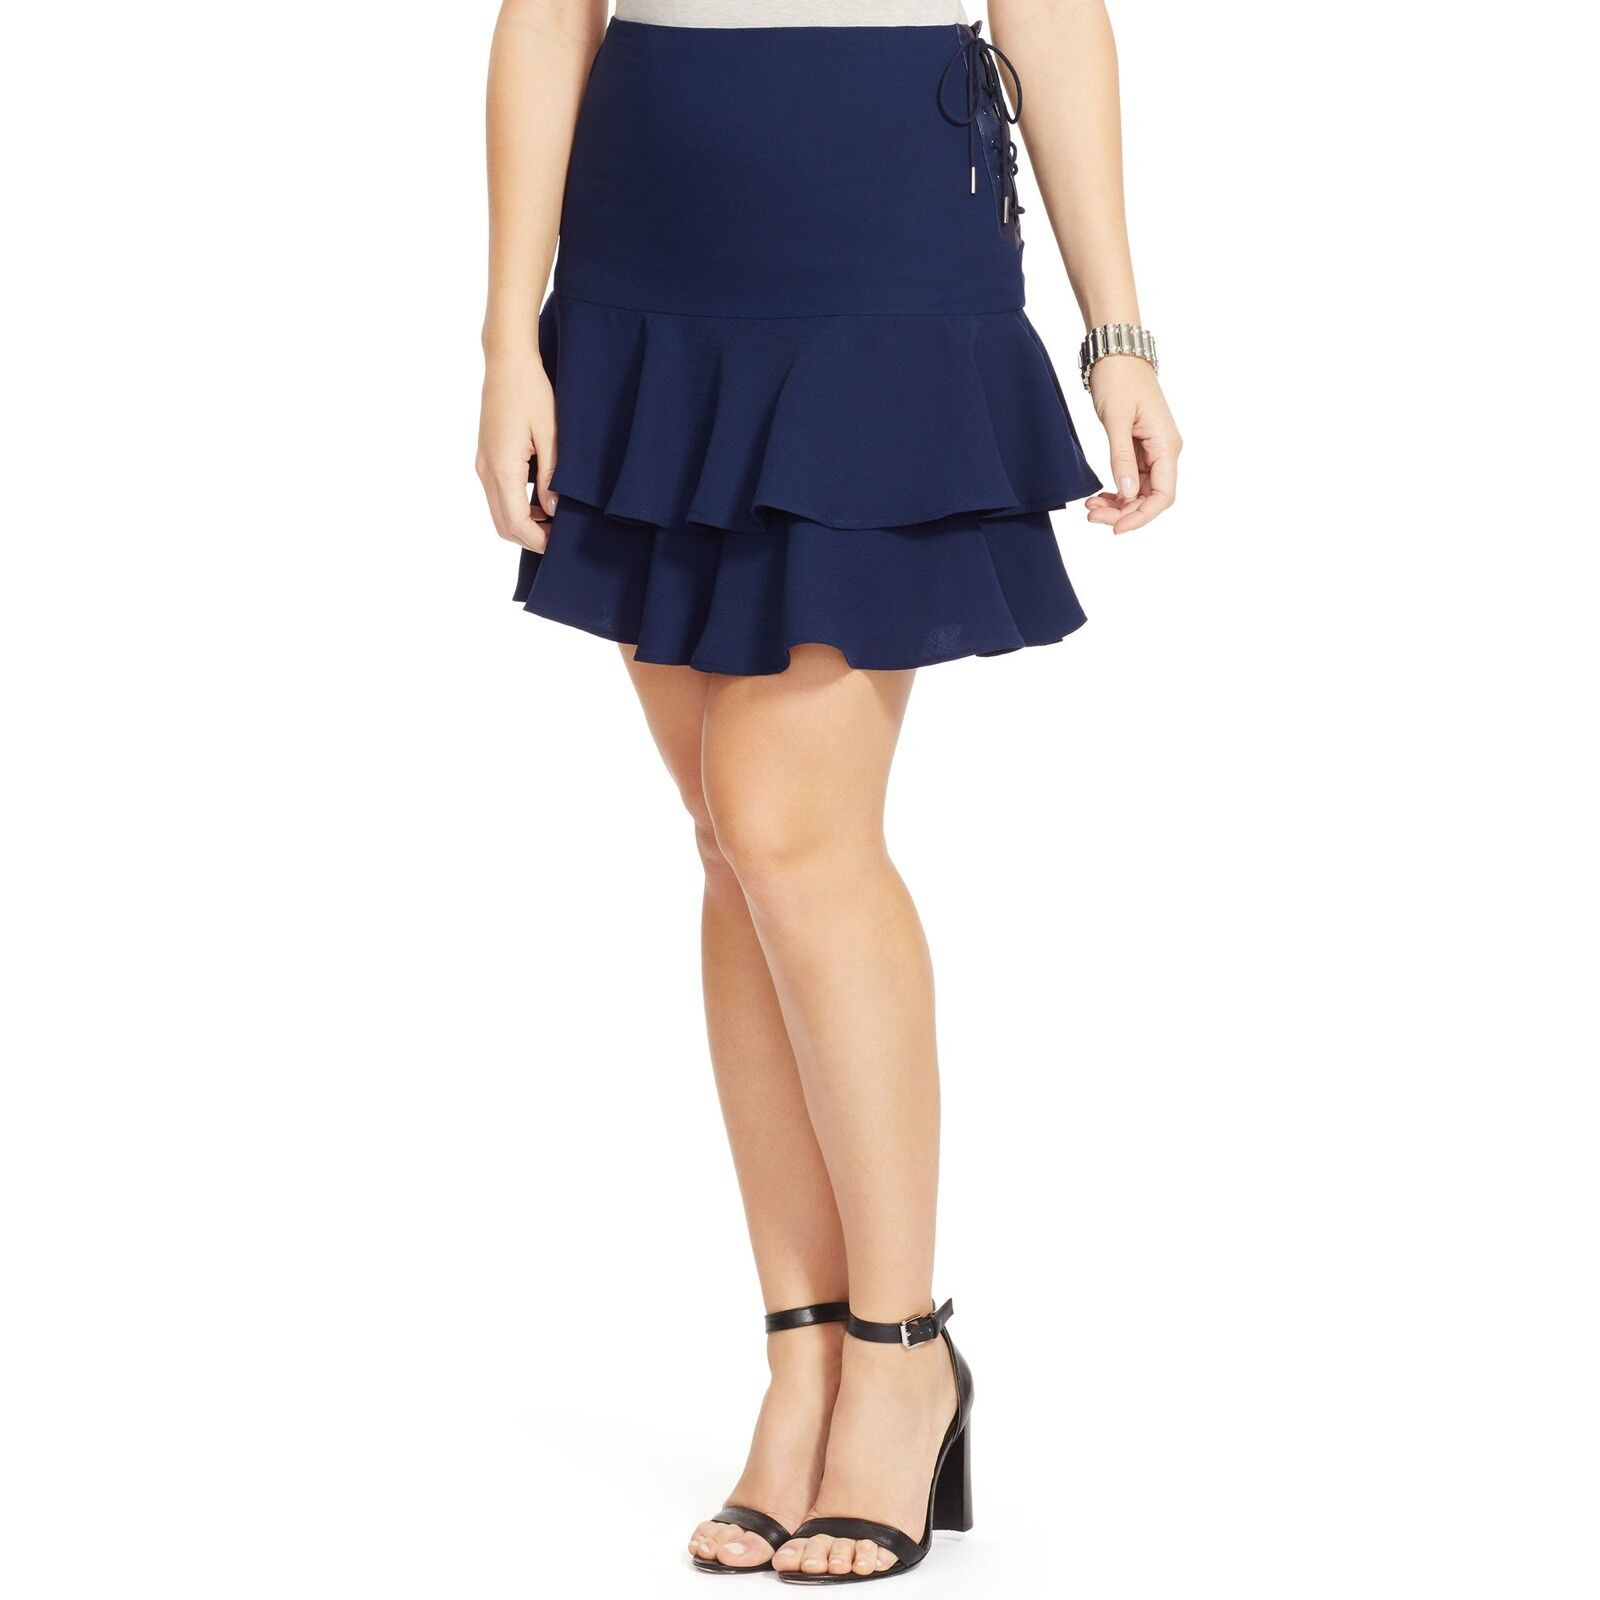 Lauren Ralph Lauren damen Leather Trim Ruffle Skirt Capry Navy Größe 2